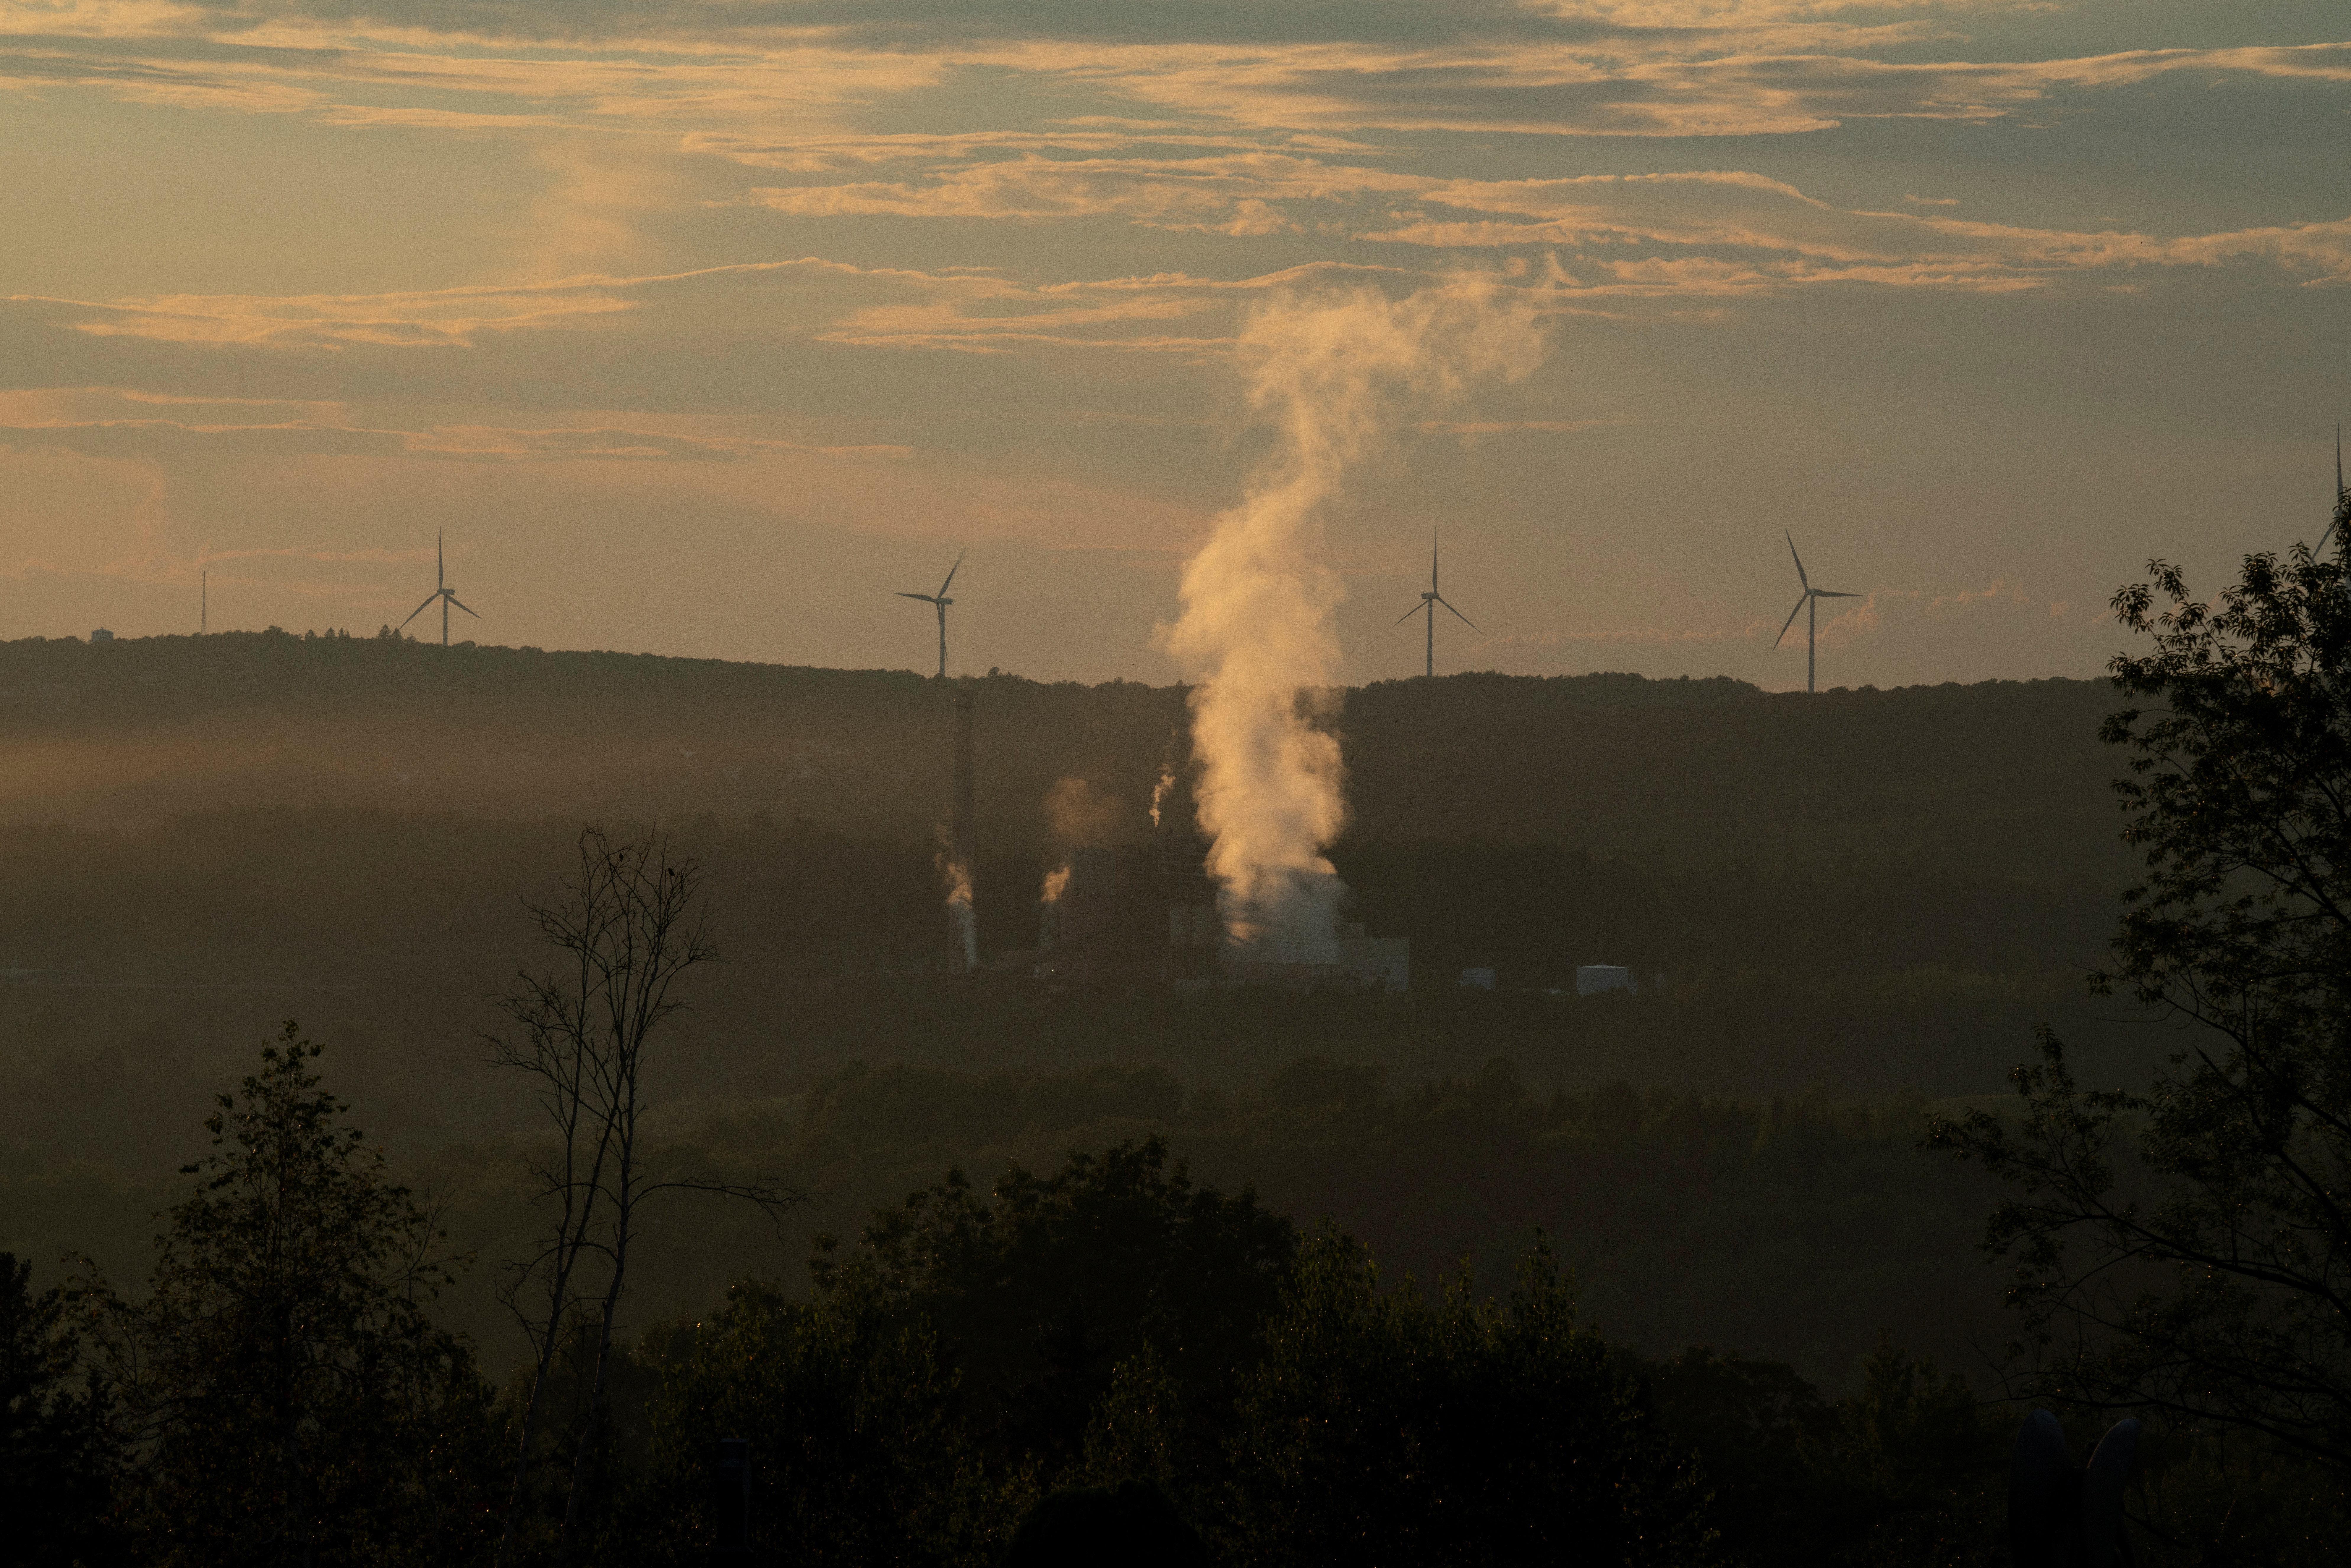 Steam rises from the Schuylkill Energy Resources power plant as wind turbines spin in the background in Mahanoy City, Pennsylvannia, U.S., August 25, 2020. Picture taken August 25, 2020.  REUTERS/Dane Rhys - RC2AWI9OWY12